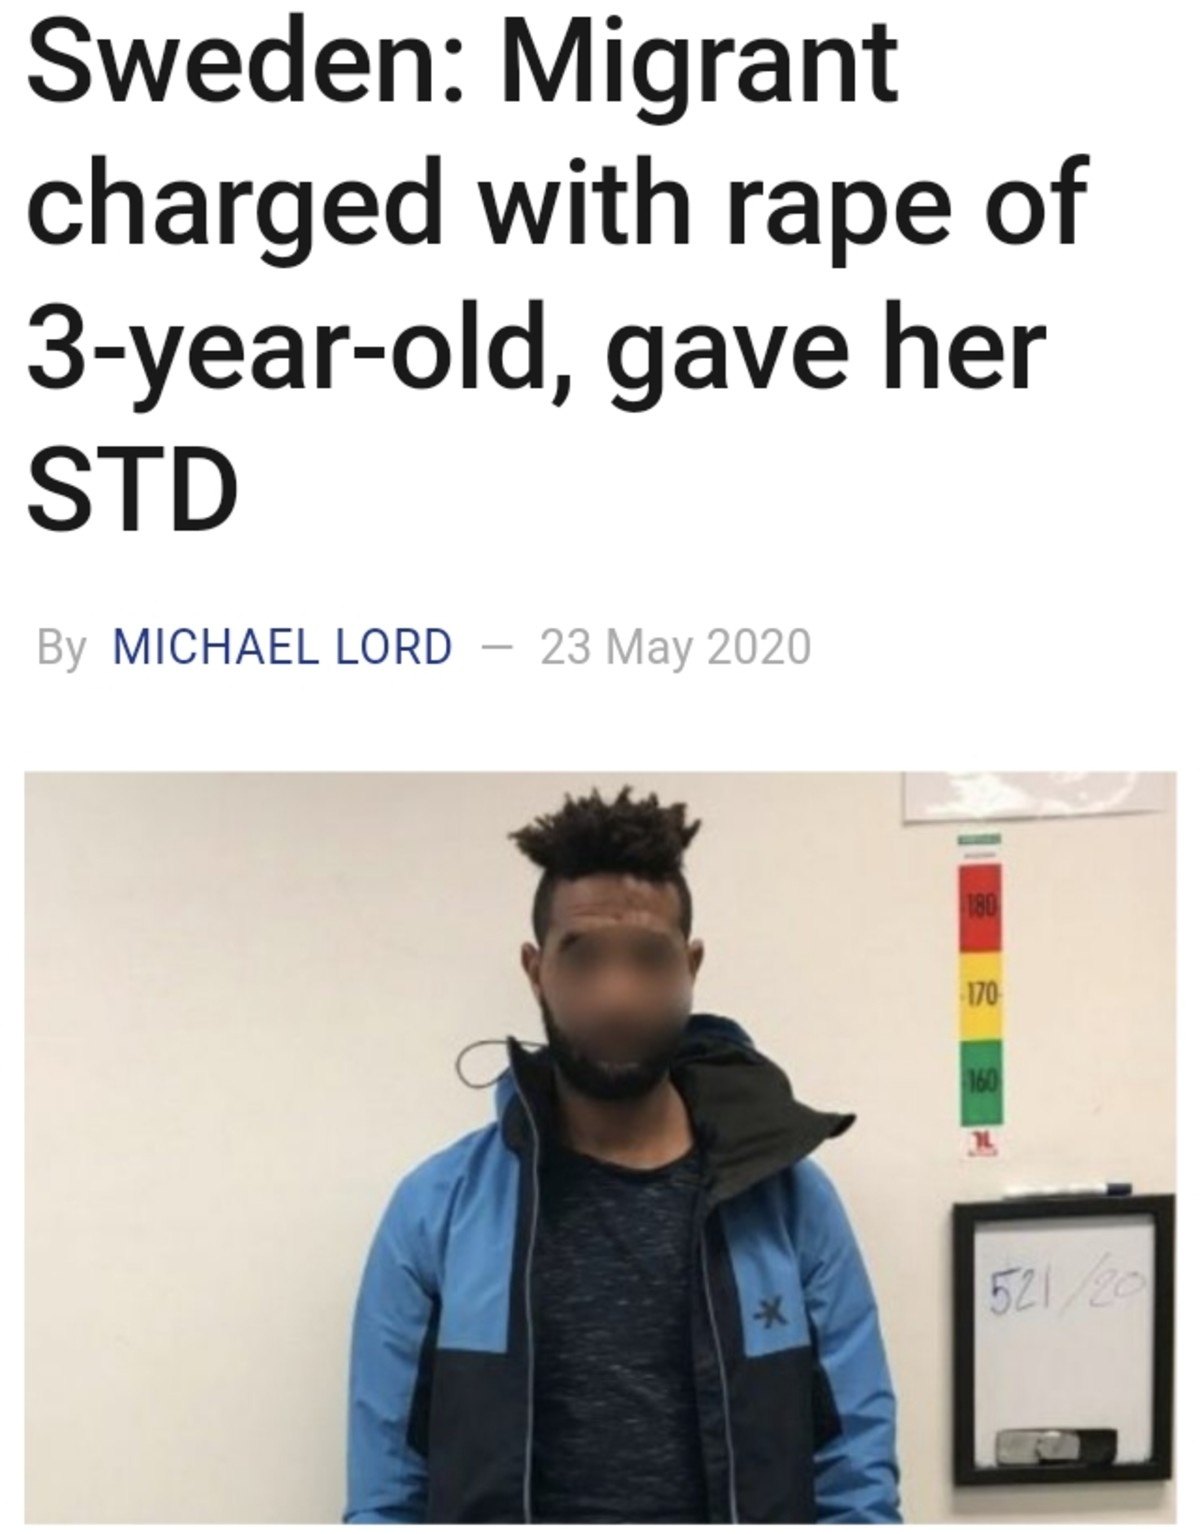 Sweden: Migrant rapes 3yr Old. Migrant from Eritrea has been charged with raping a 3-year-old girl in Sweden. A medical center has determined that the girl now